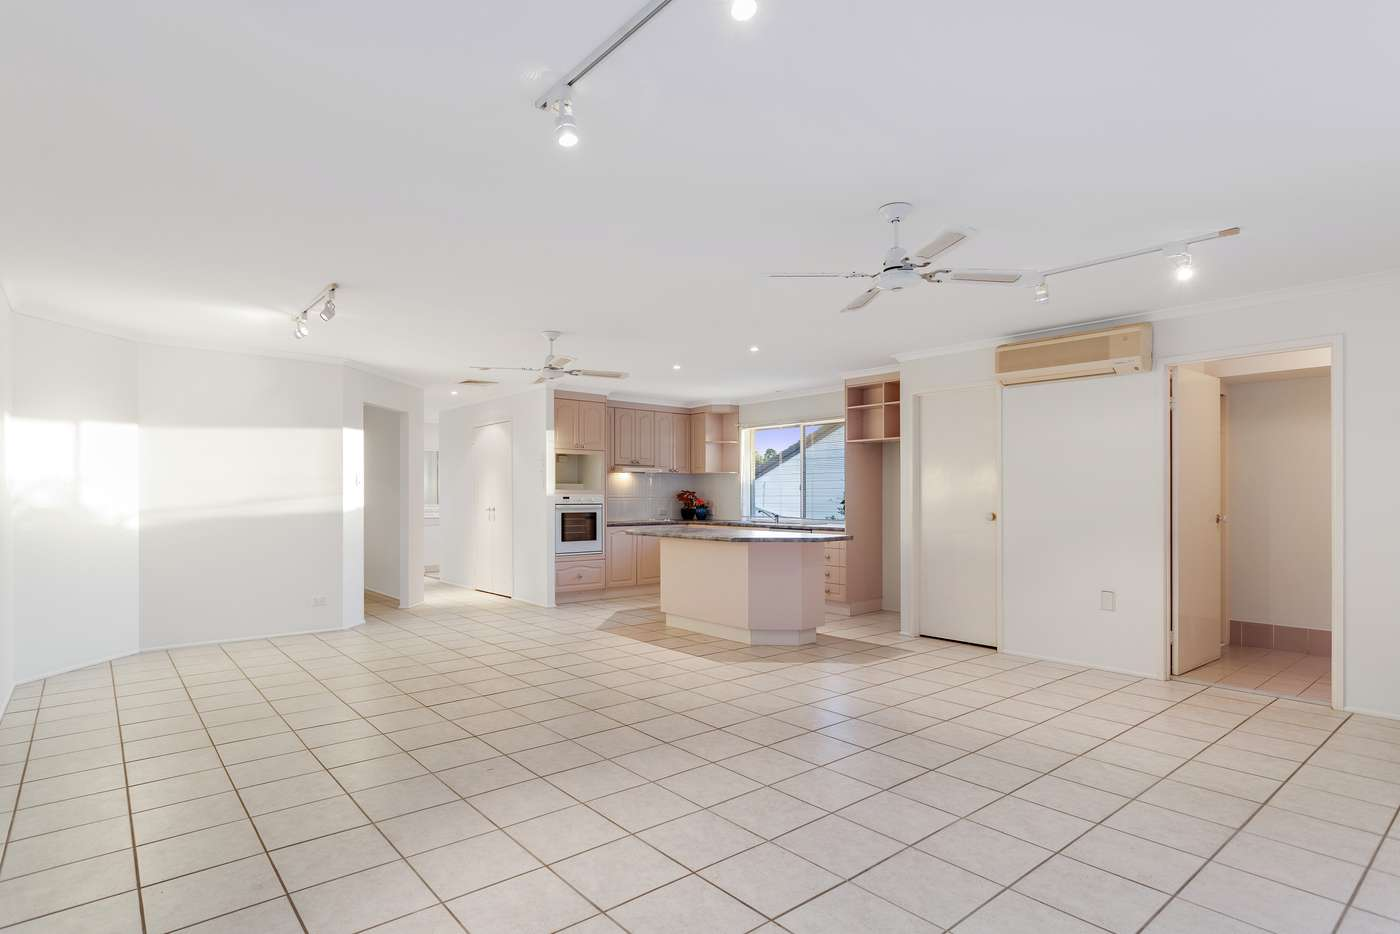 Sixth view of Homely house listing, 7 Lambourn Street, Chapel Hill QLD 4069